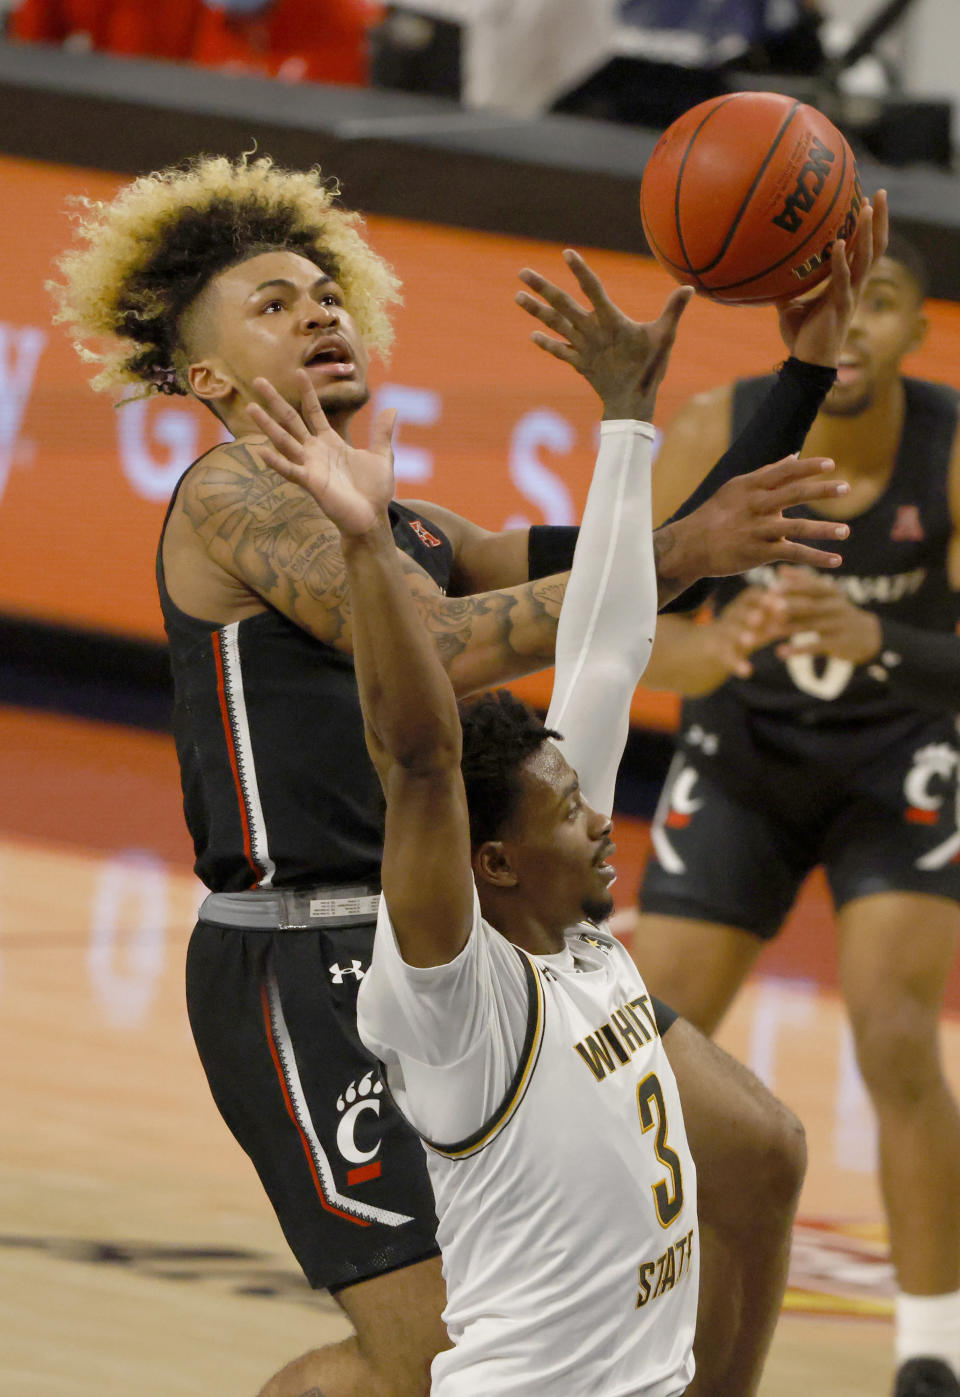 Cincinnati guard Mike Saunders (3) goes up for a shot as Wichita State guard Alterique Gilbert (3) defends during the first half of an NCAA college basketball game in the semifinal round of the American Athletic Conference men's tournament Saturday, March 13, 2021, in Fort Worth, Texas. (AP Photo/Ron Jenkins)